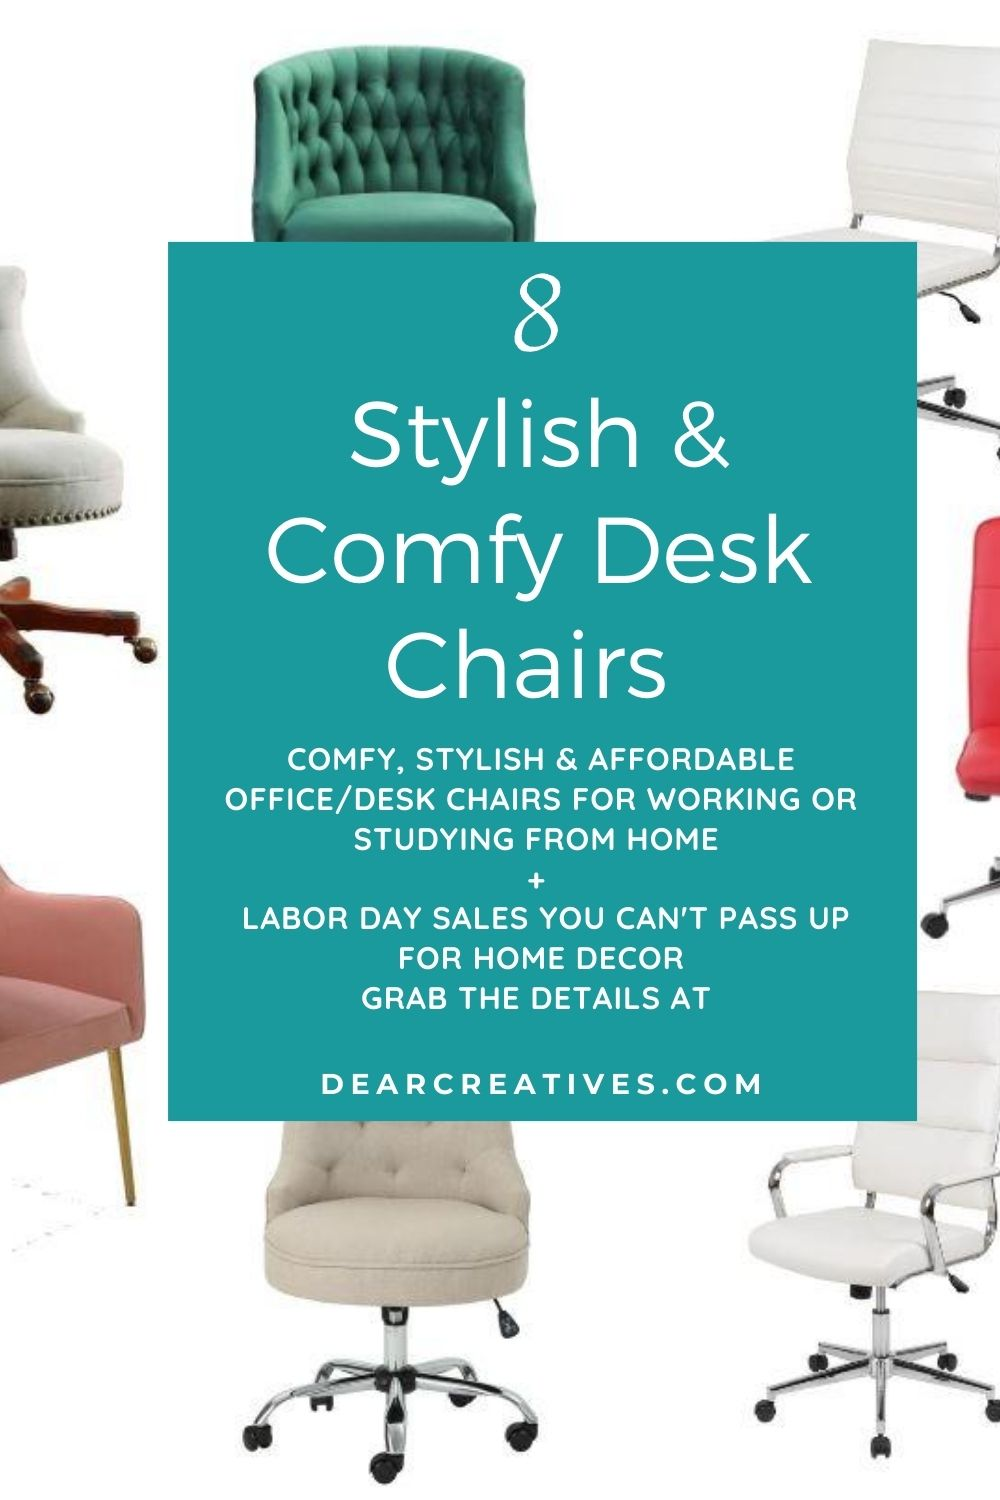 Comfy Desk Chairs For Working Or Studying At Home!